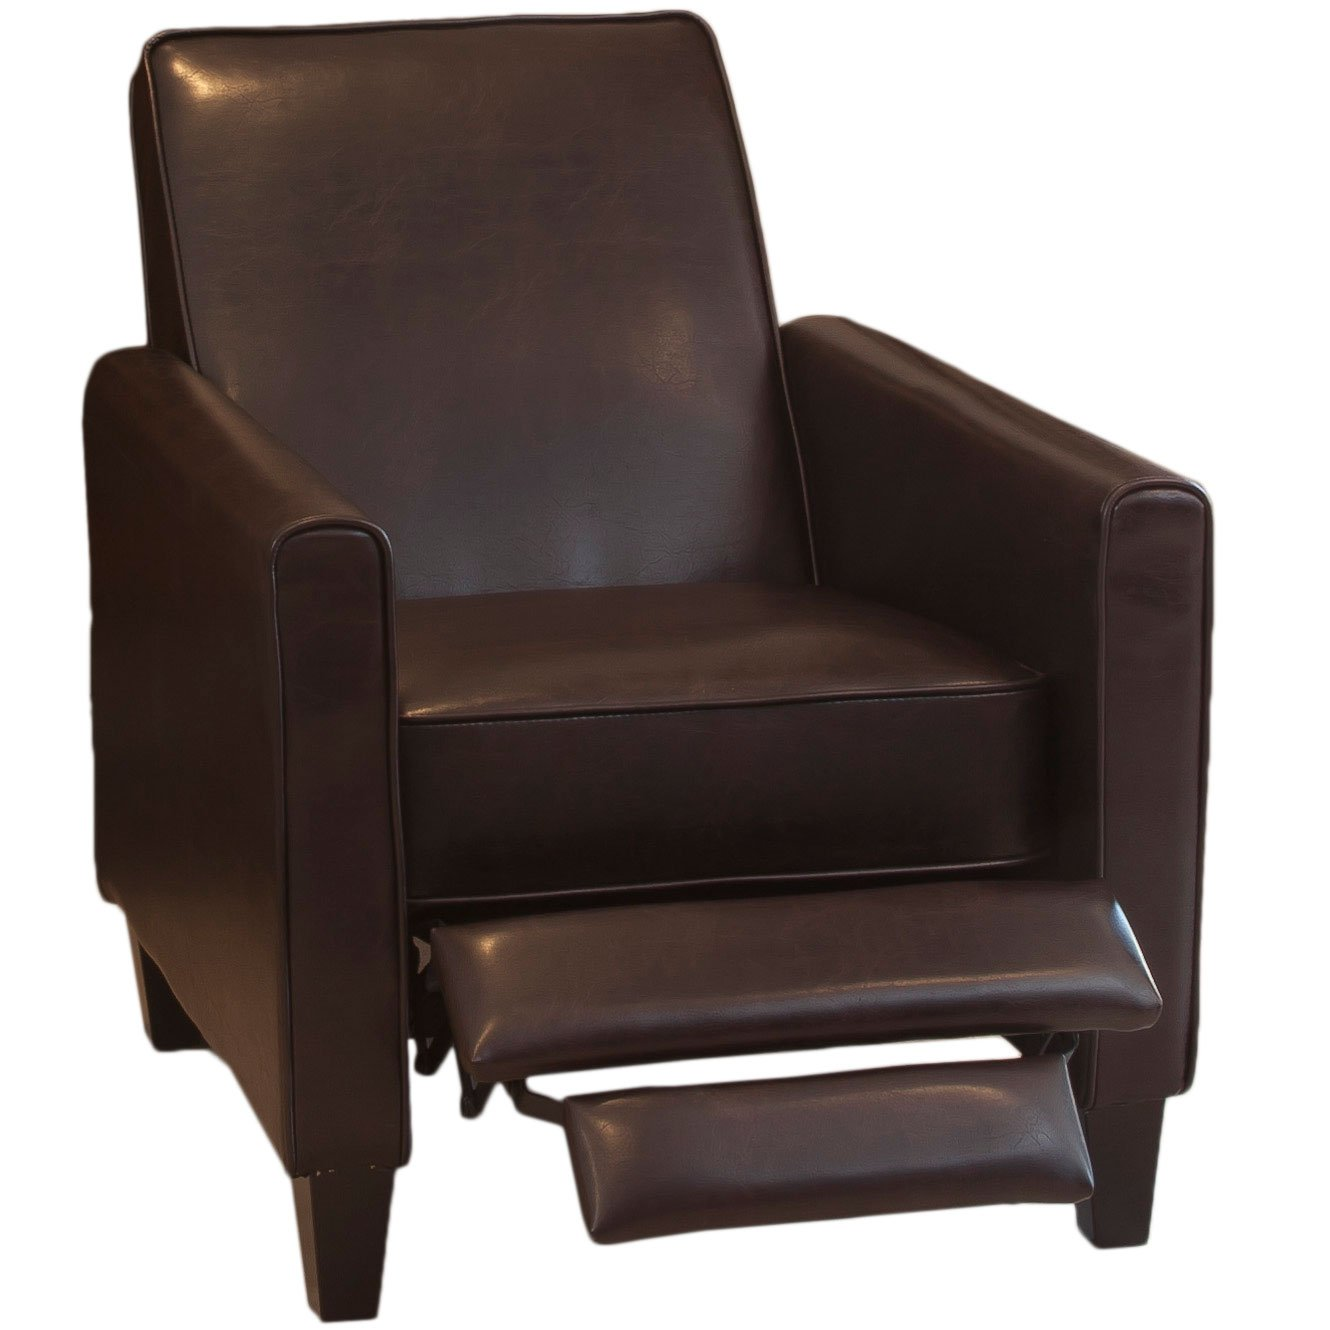 Great Deal Furniture Lucas Brown Leather Modern Sleek Recliner Club Chair